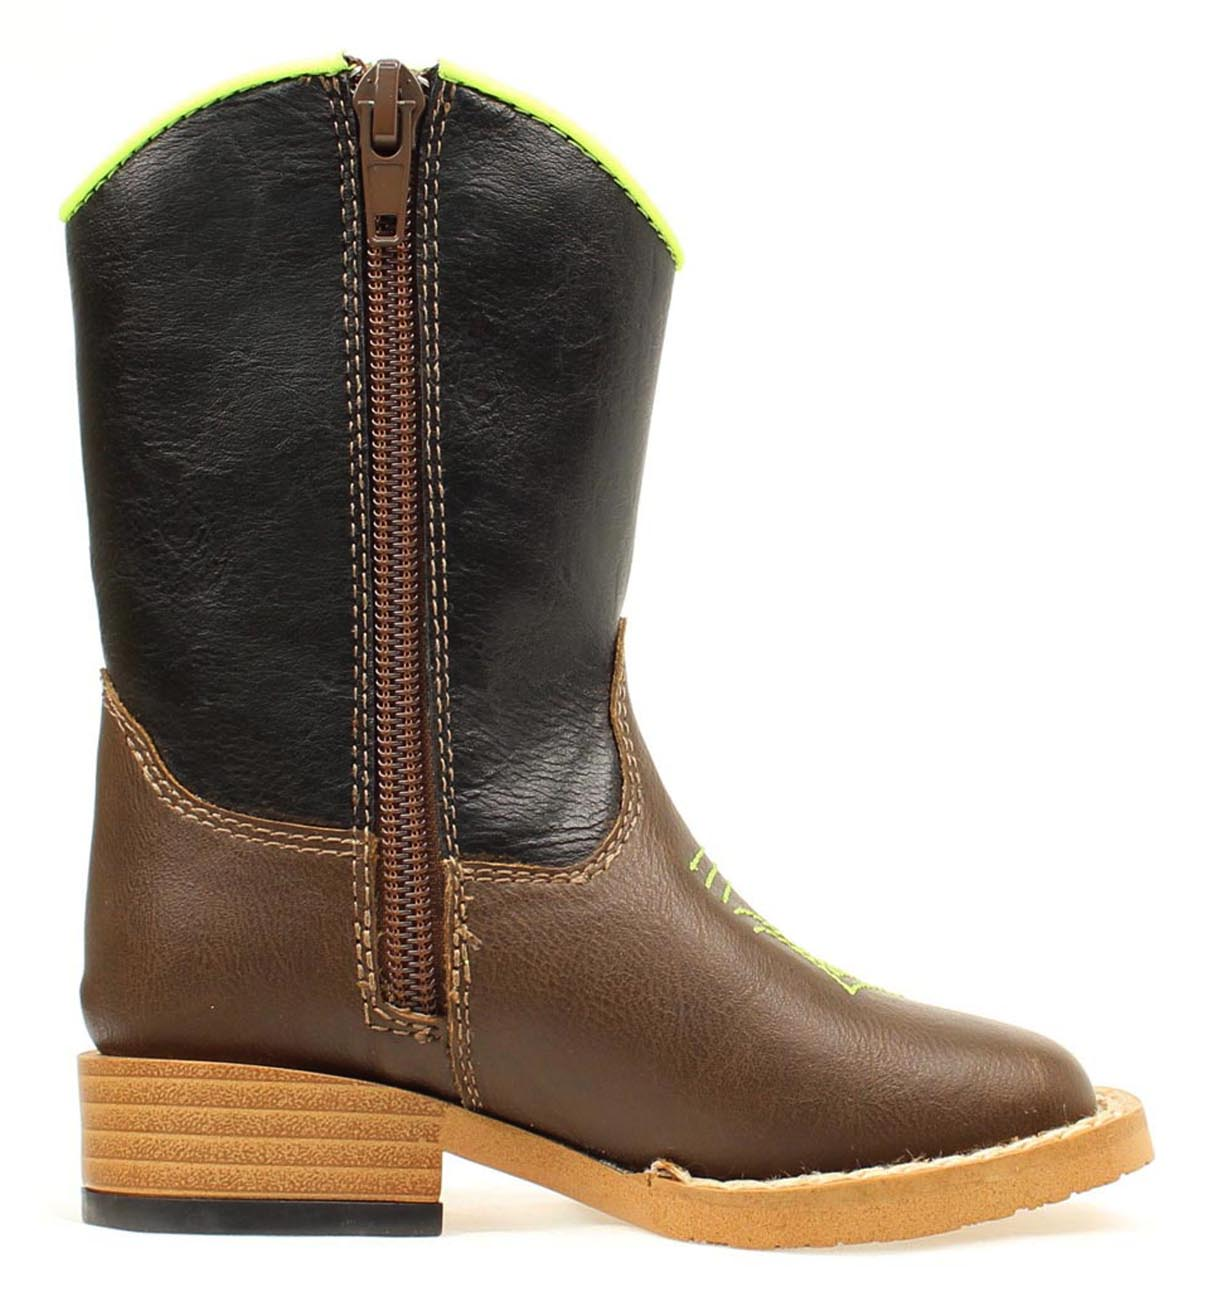 j 41 naples boots for kids - photo#23